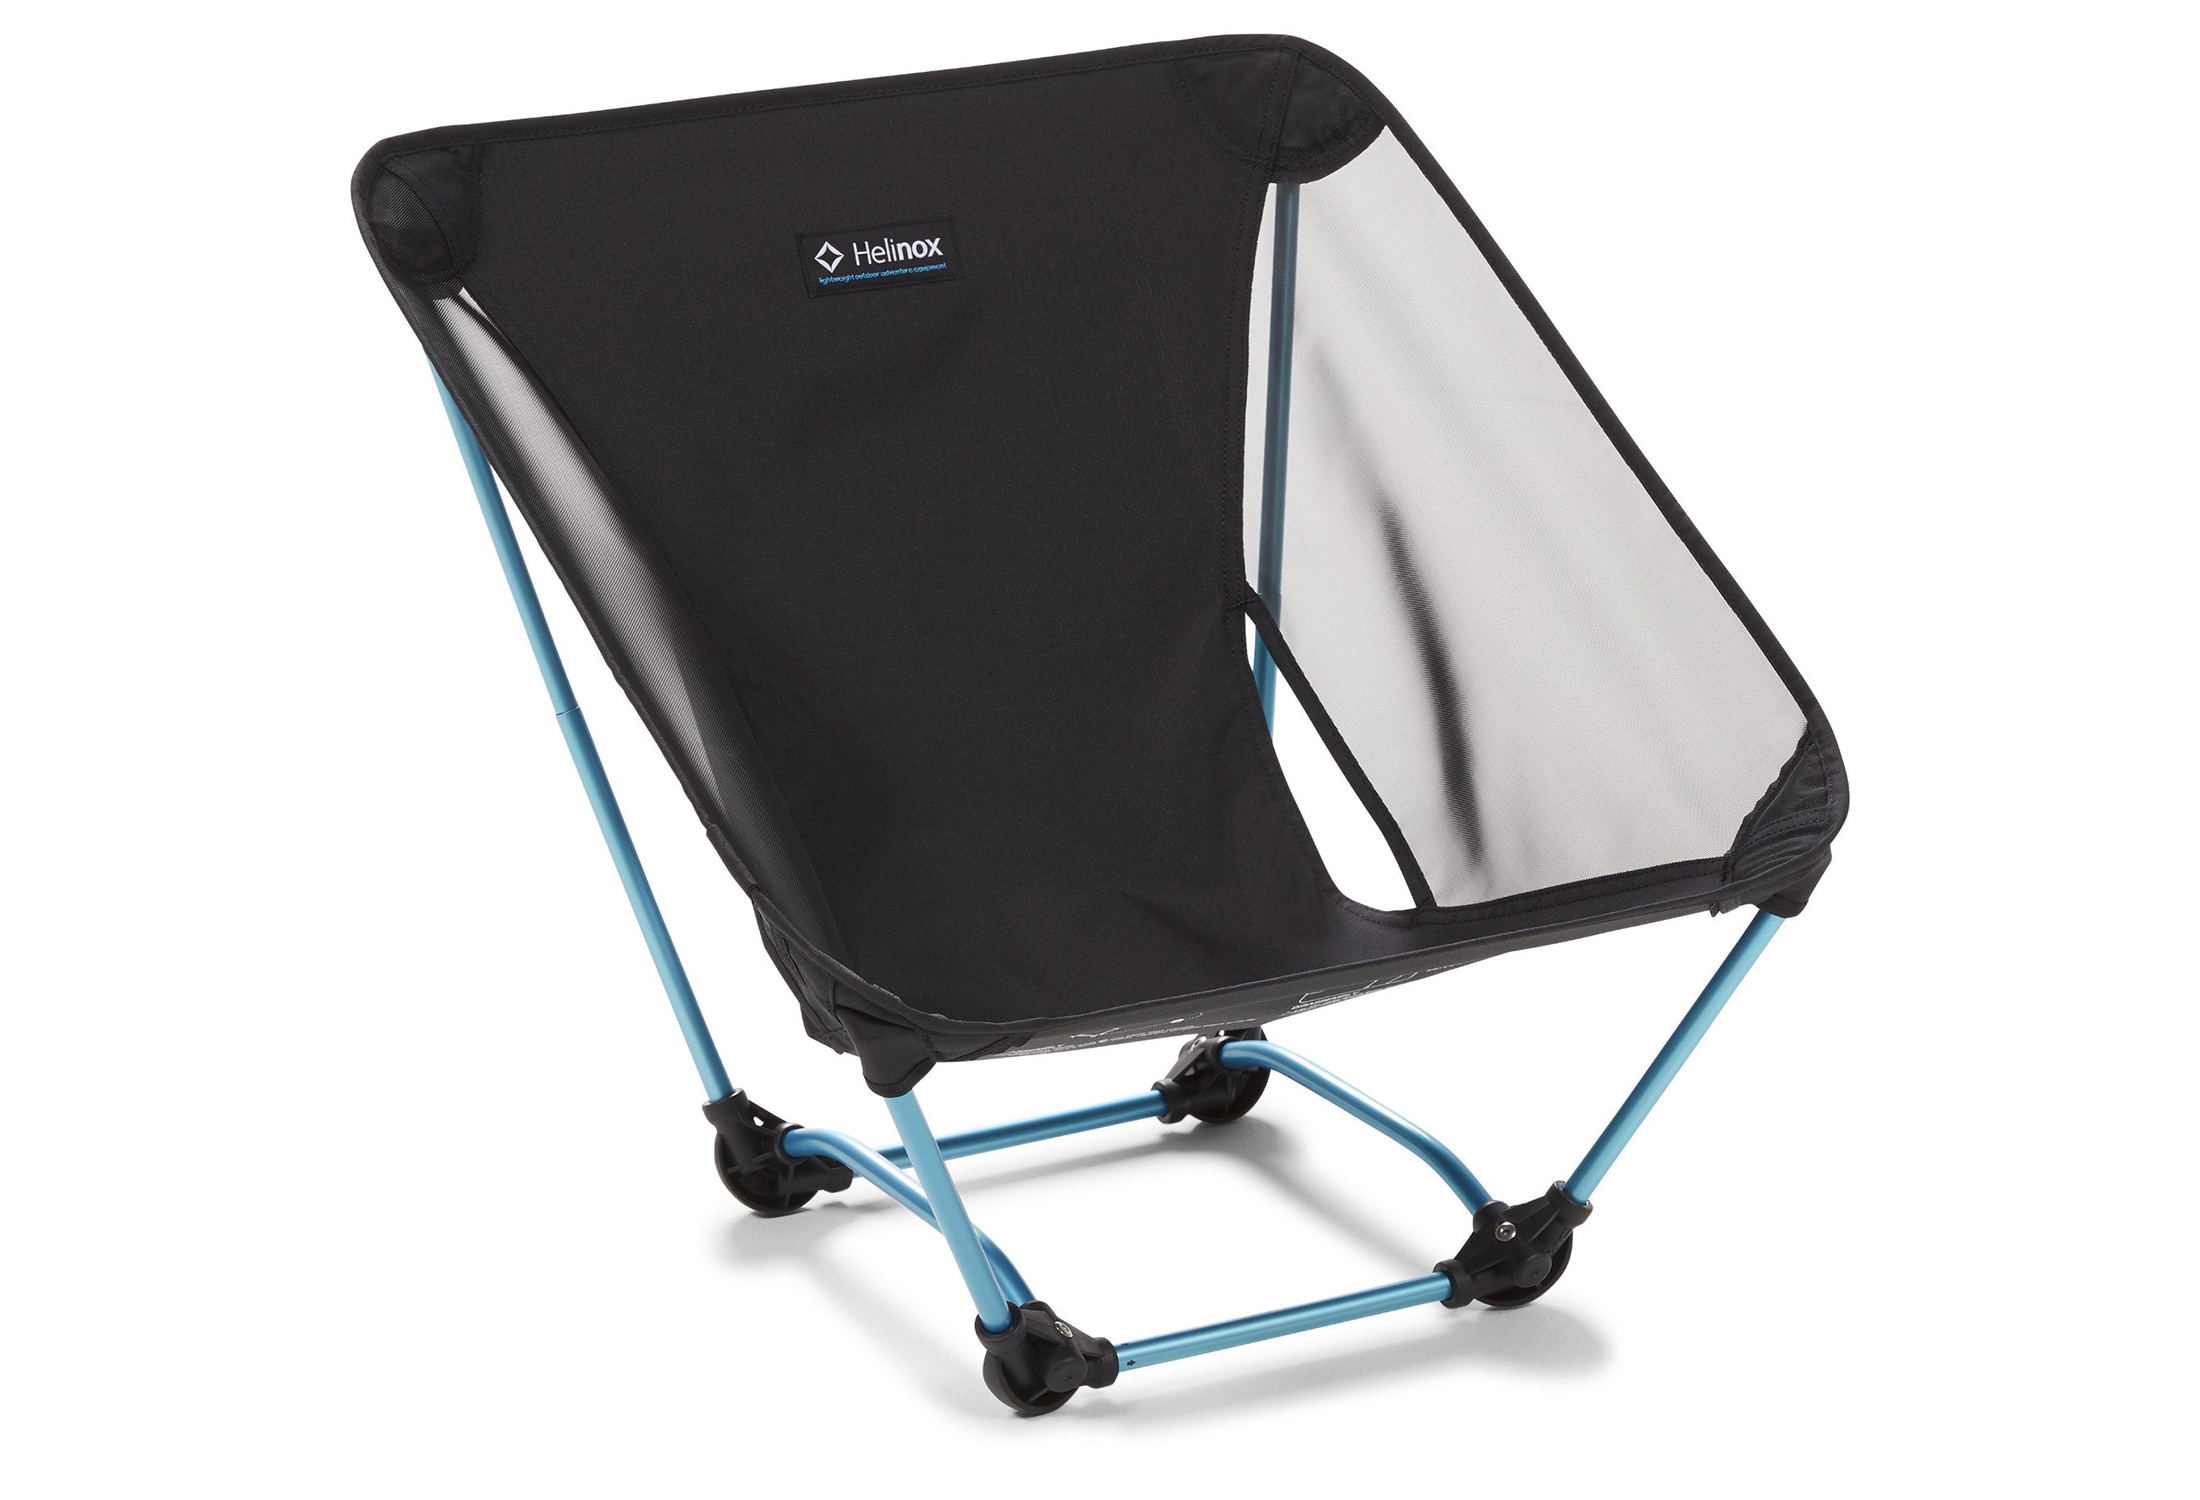 helinox ground chair 2020